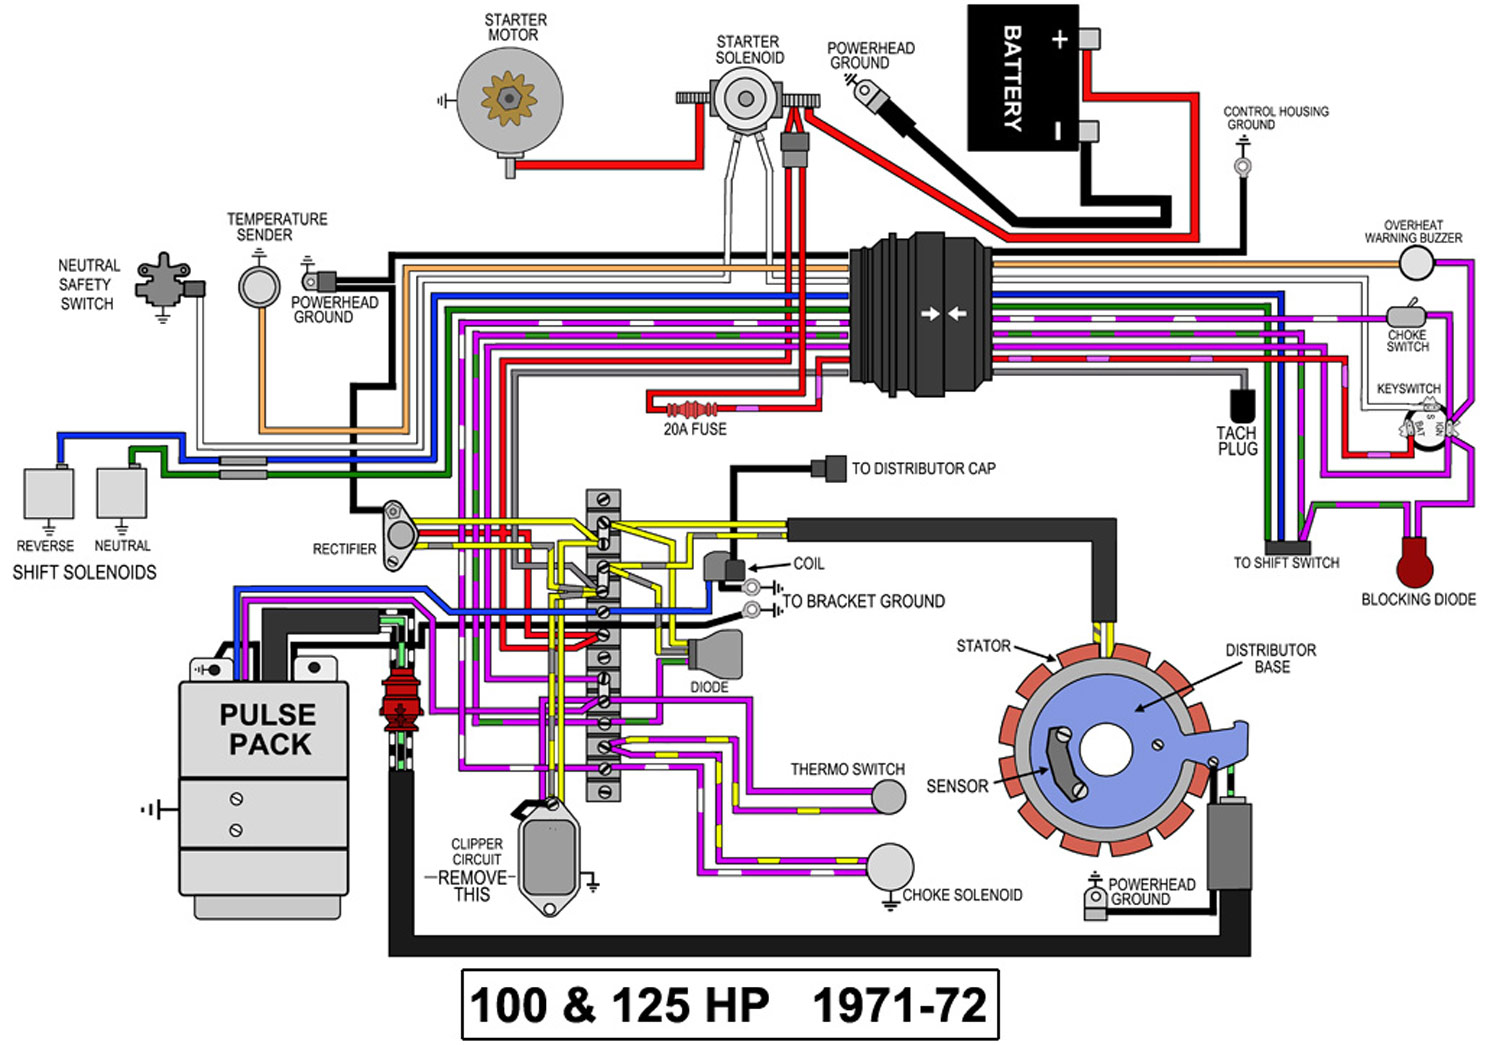 evinrude 90 hp 1990 wiring diagram  evinrude  free engine image for user manual download Johnson Outboard Electrical Diagram Johnson Outboard Motor Diagram